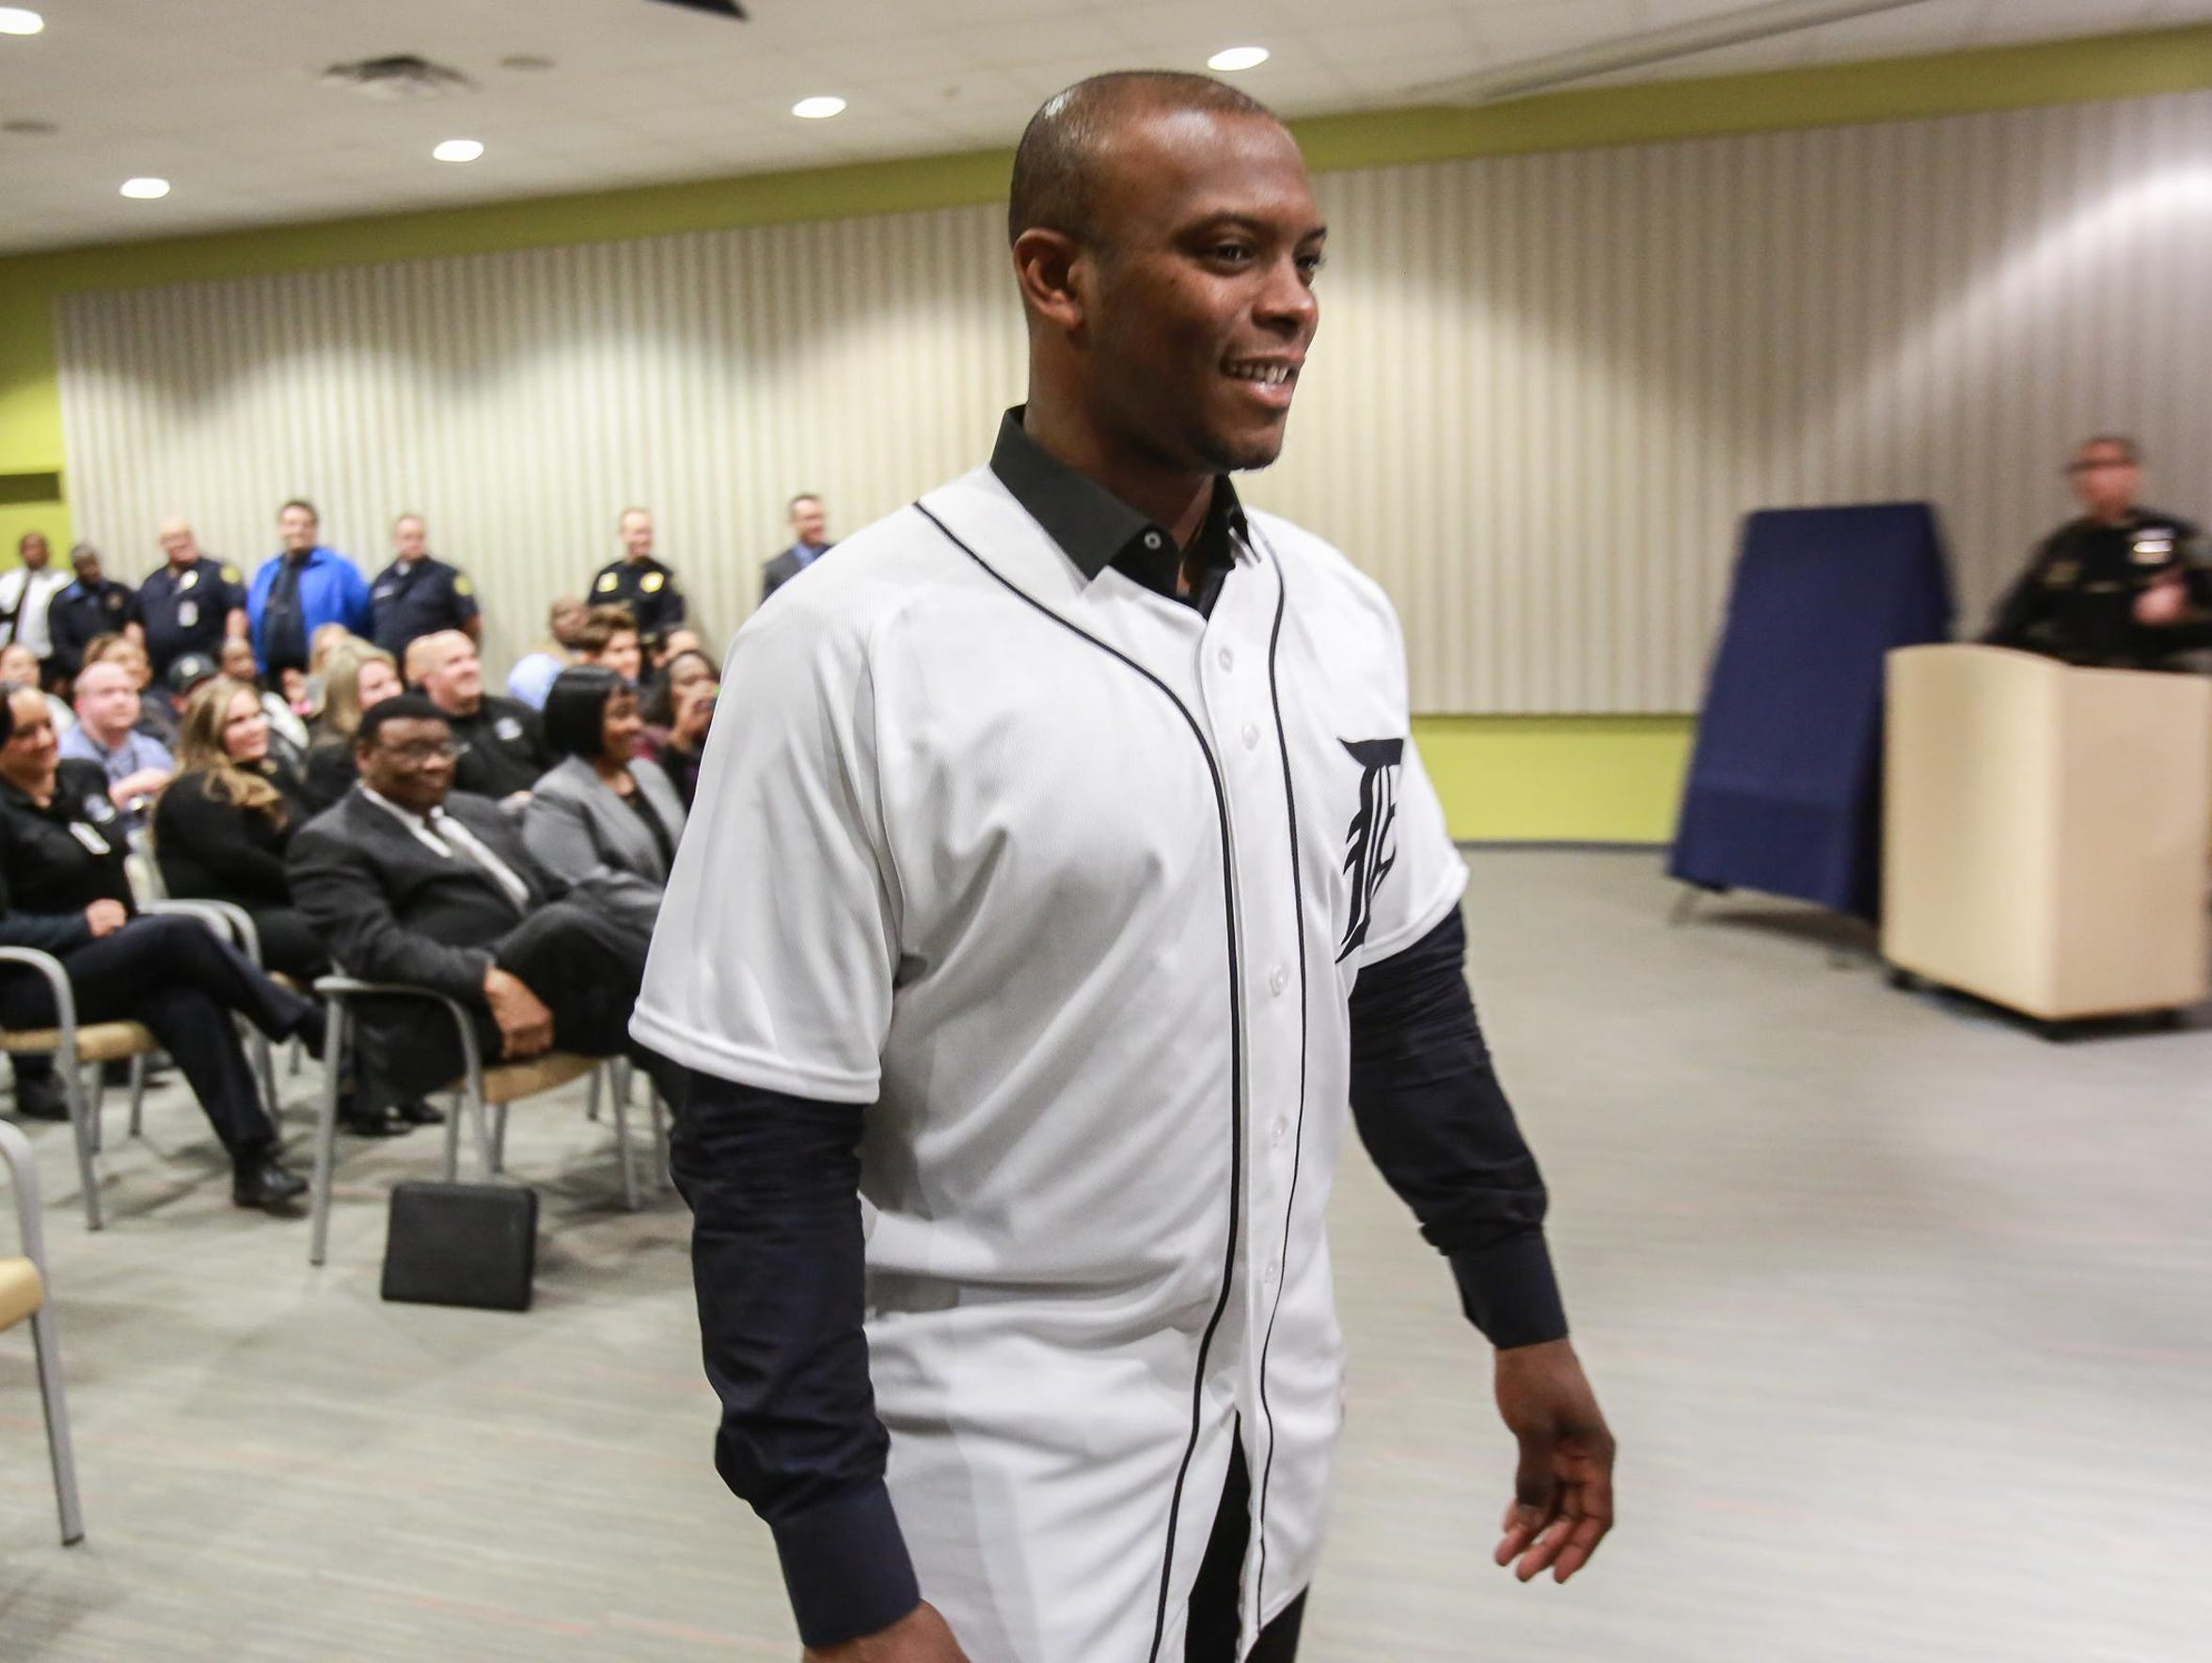 The newest Tiger, Justin Upton, and some of the team